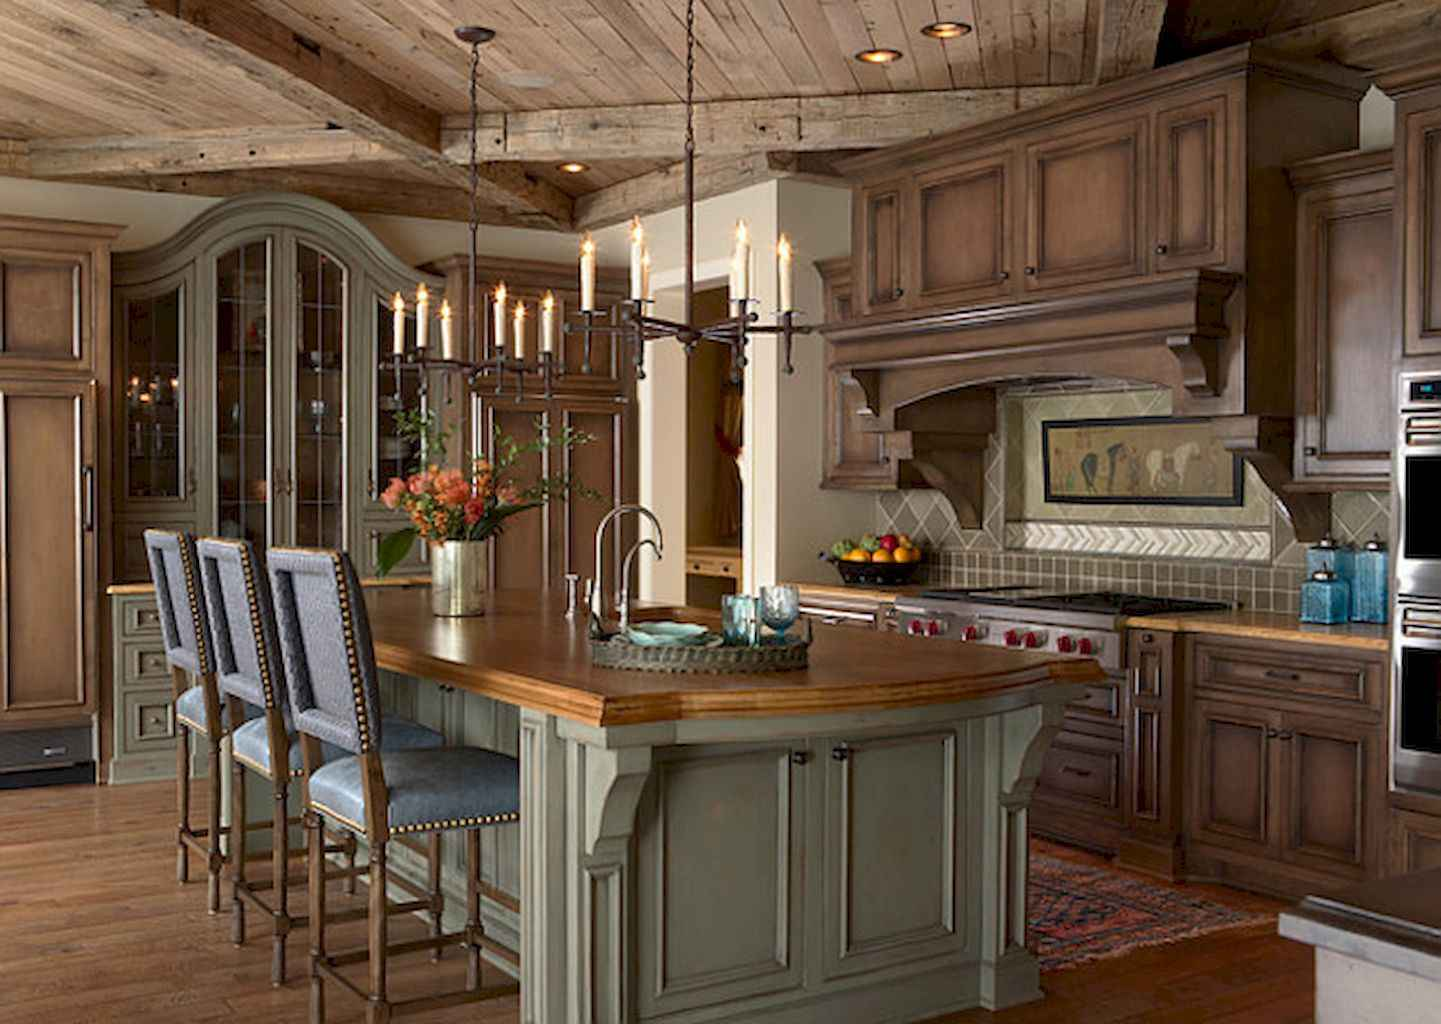 Incredible french country kitchen design ideas (28)